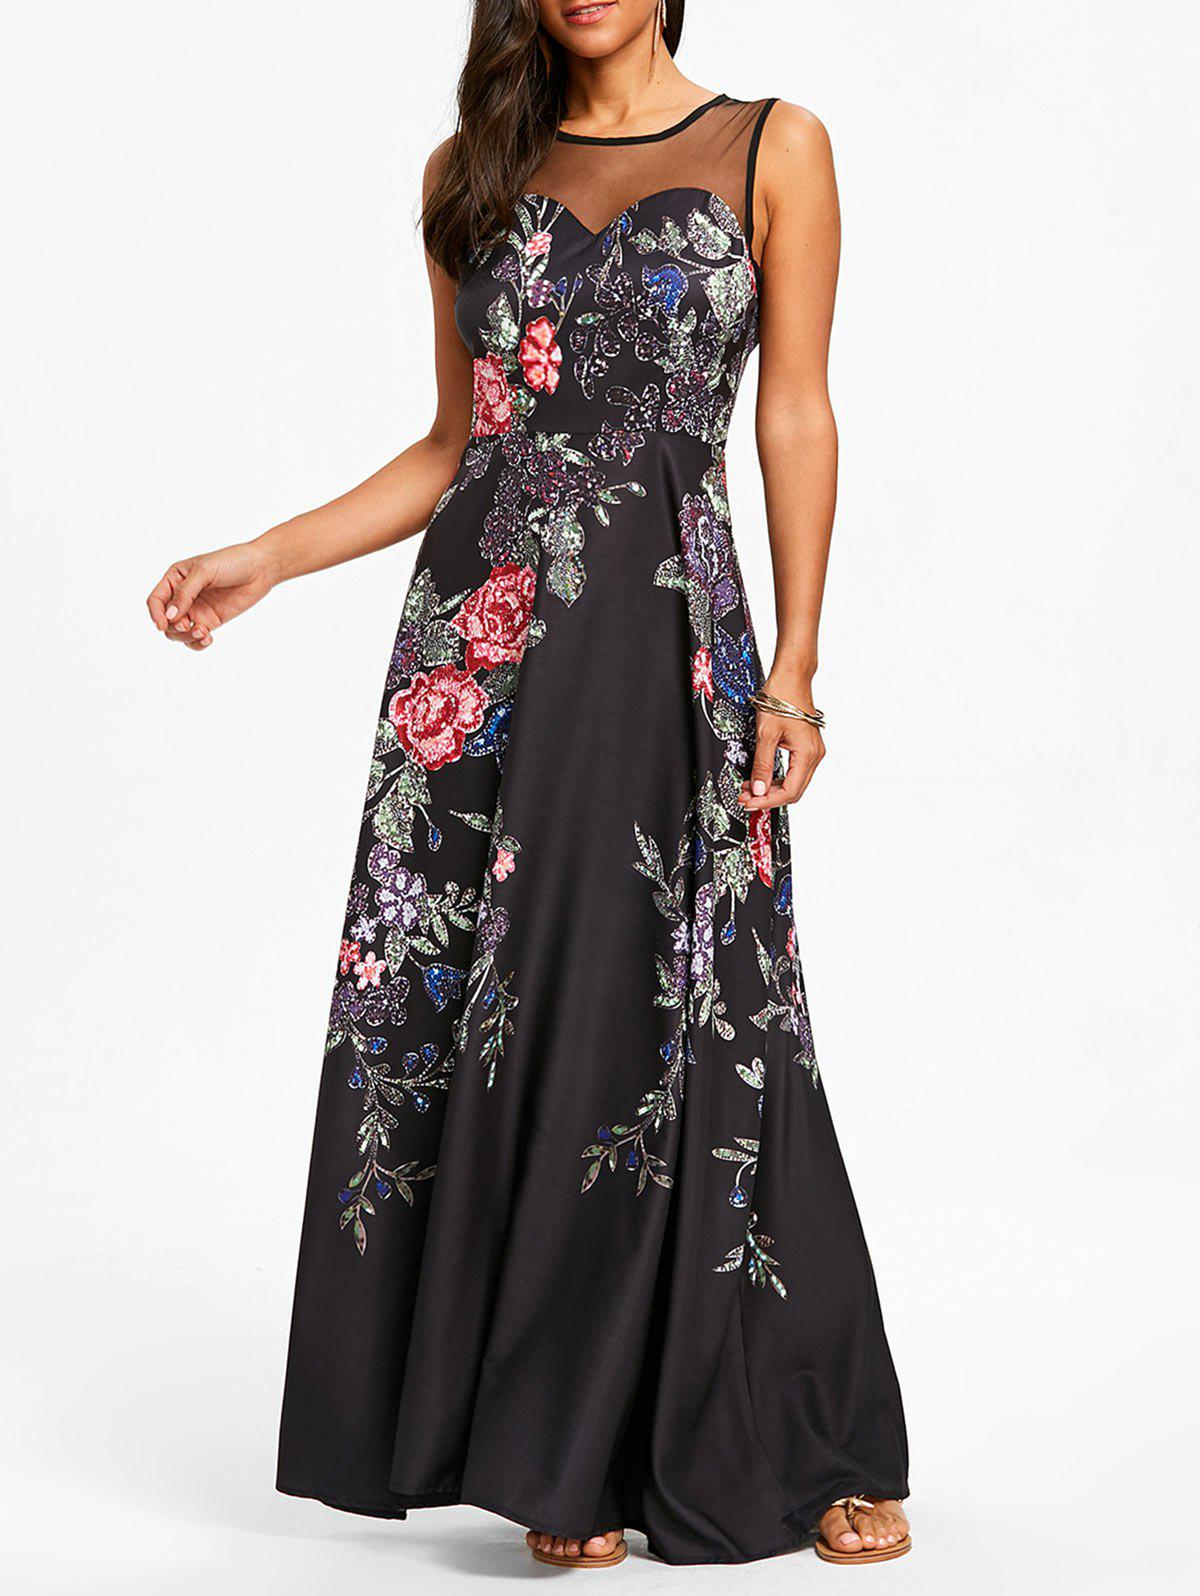 Chic Floral Print Mesh Panel Maxi Dress